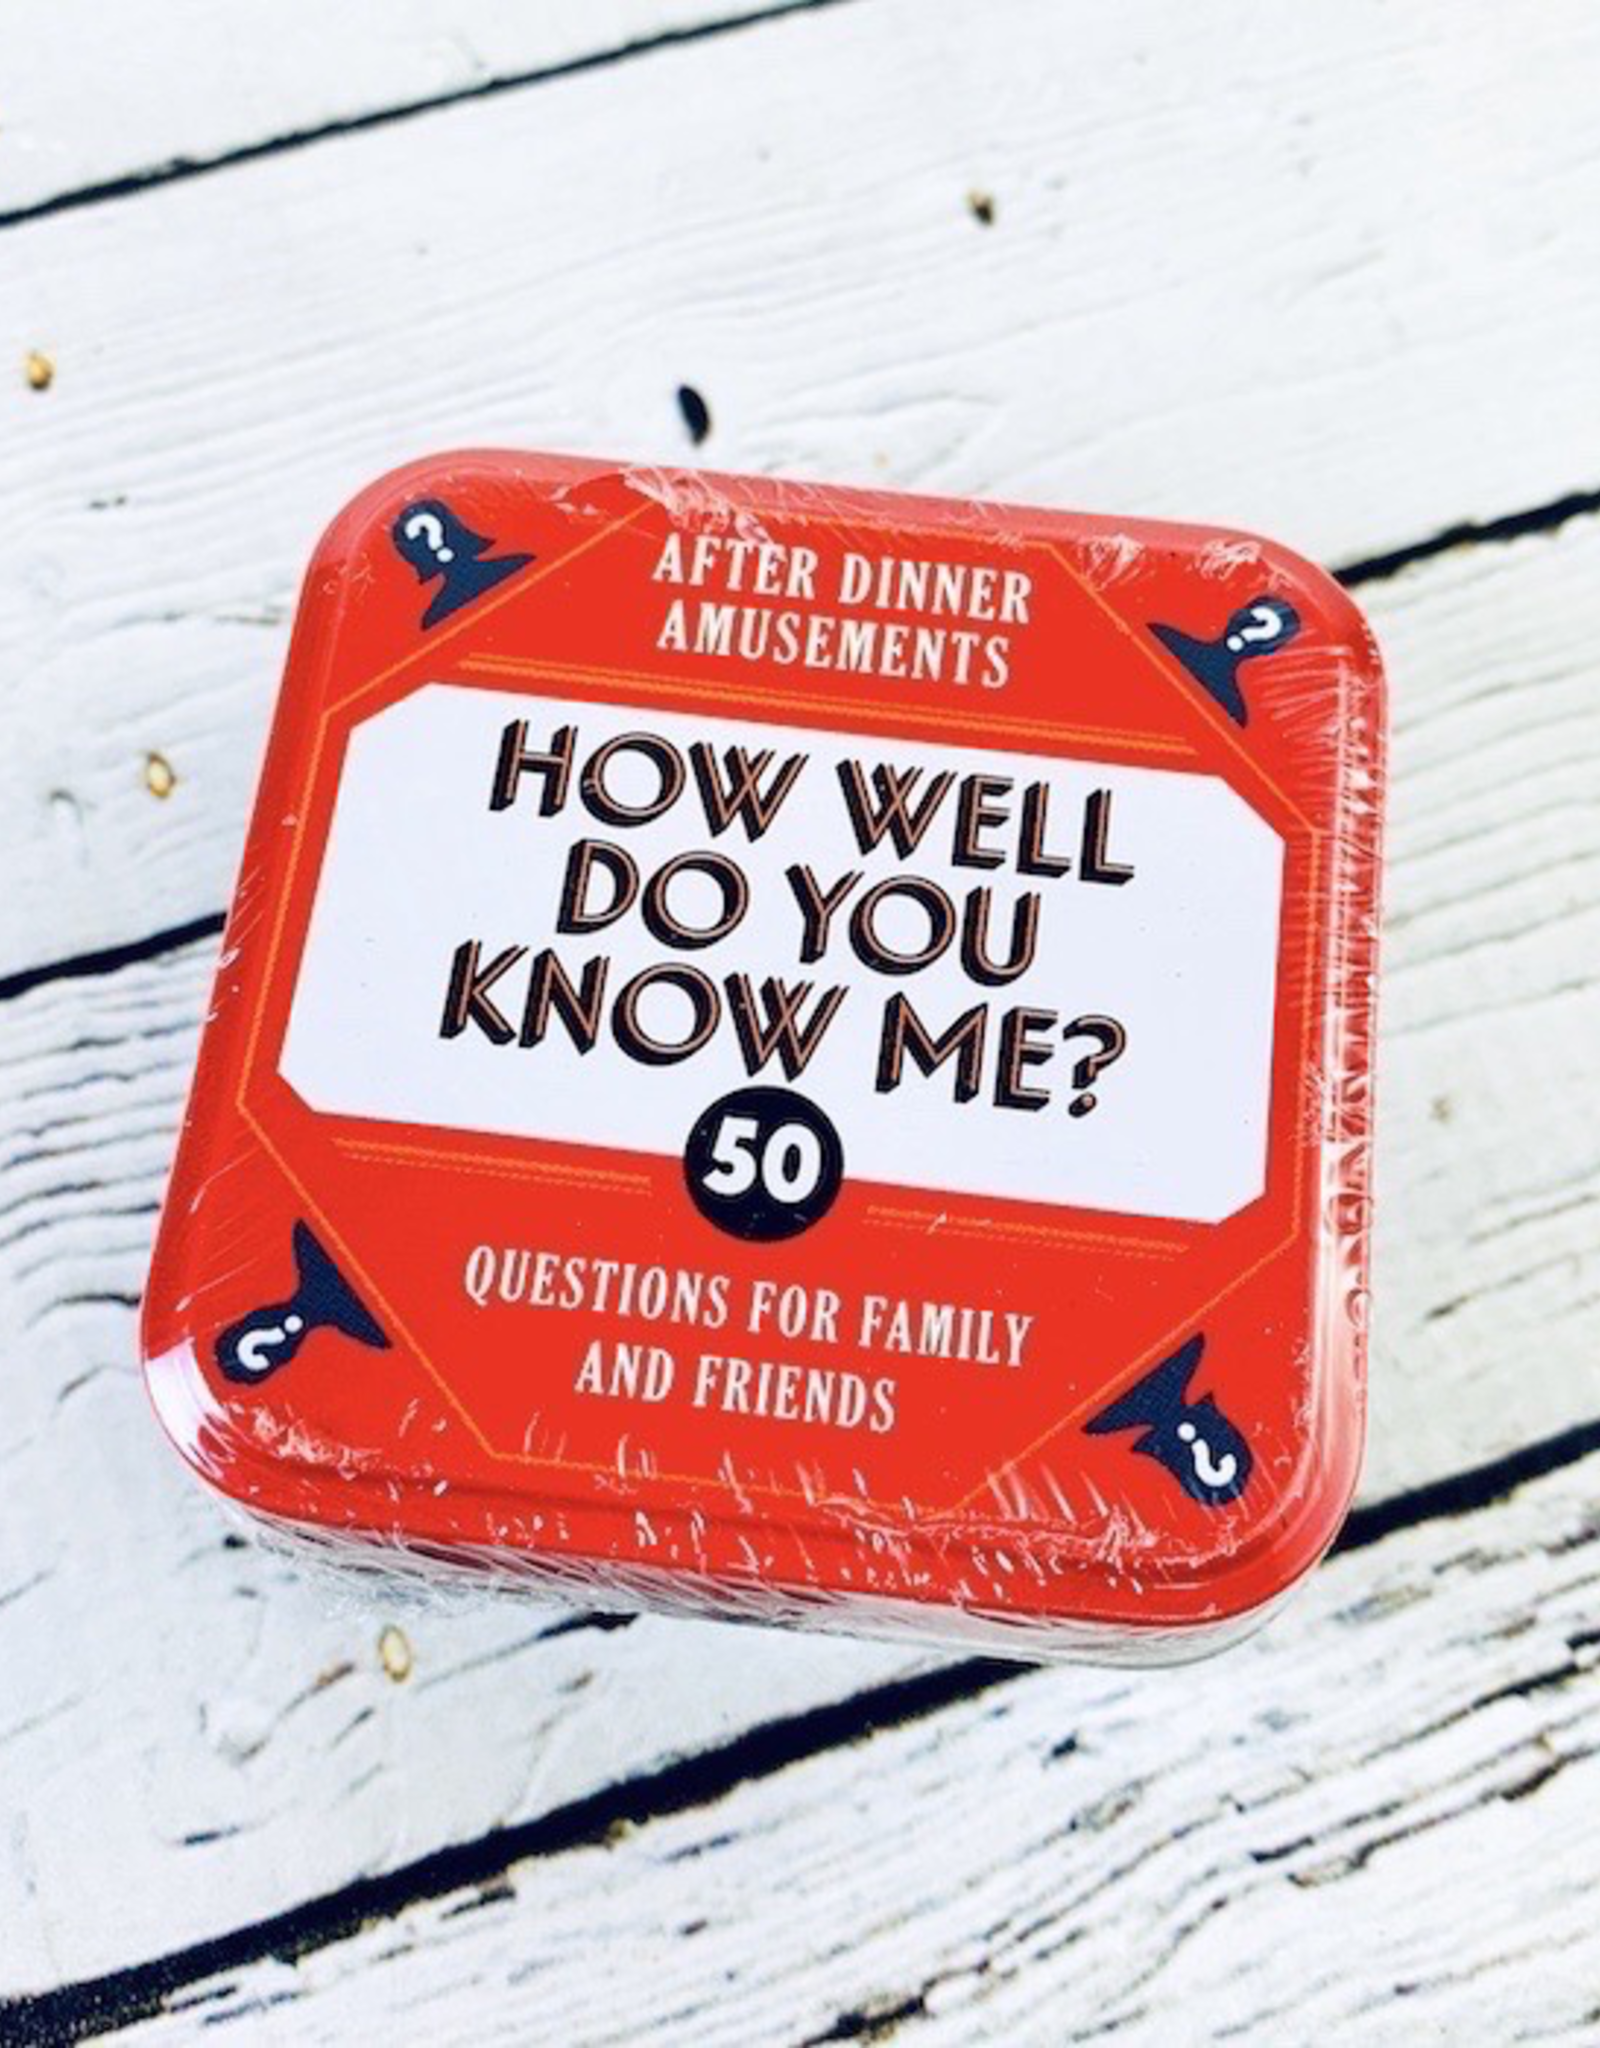 After Dinner Amusements: How Well Do You Know Me? 50 Questions for Family and Friends